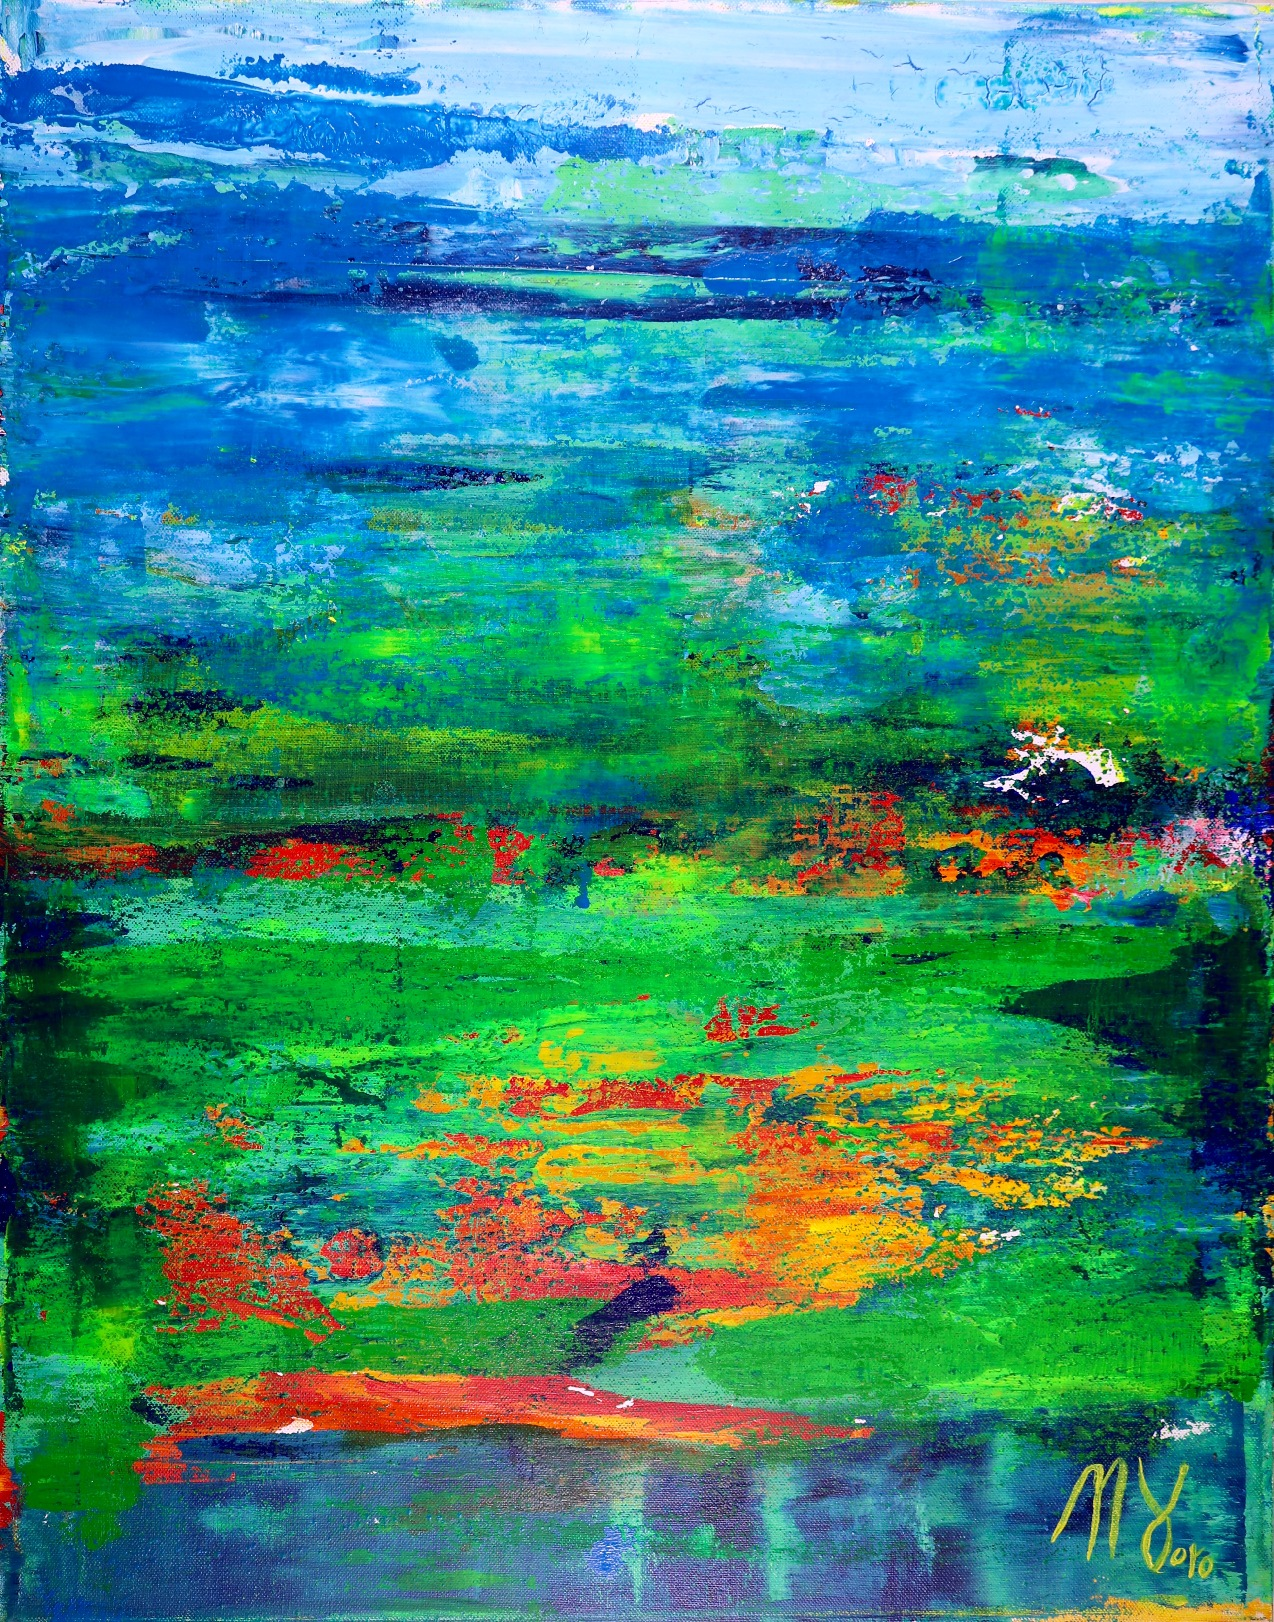 Tropics Field (2018) abstract art Acrylic painting by Nestor Toro